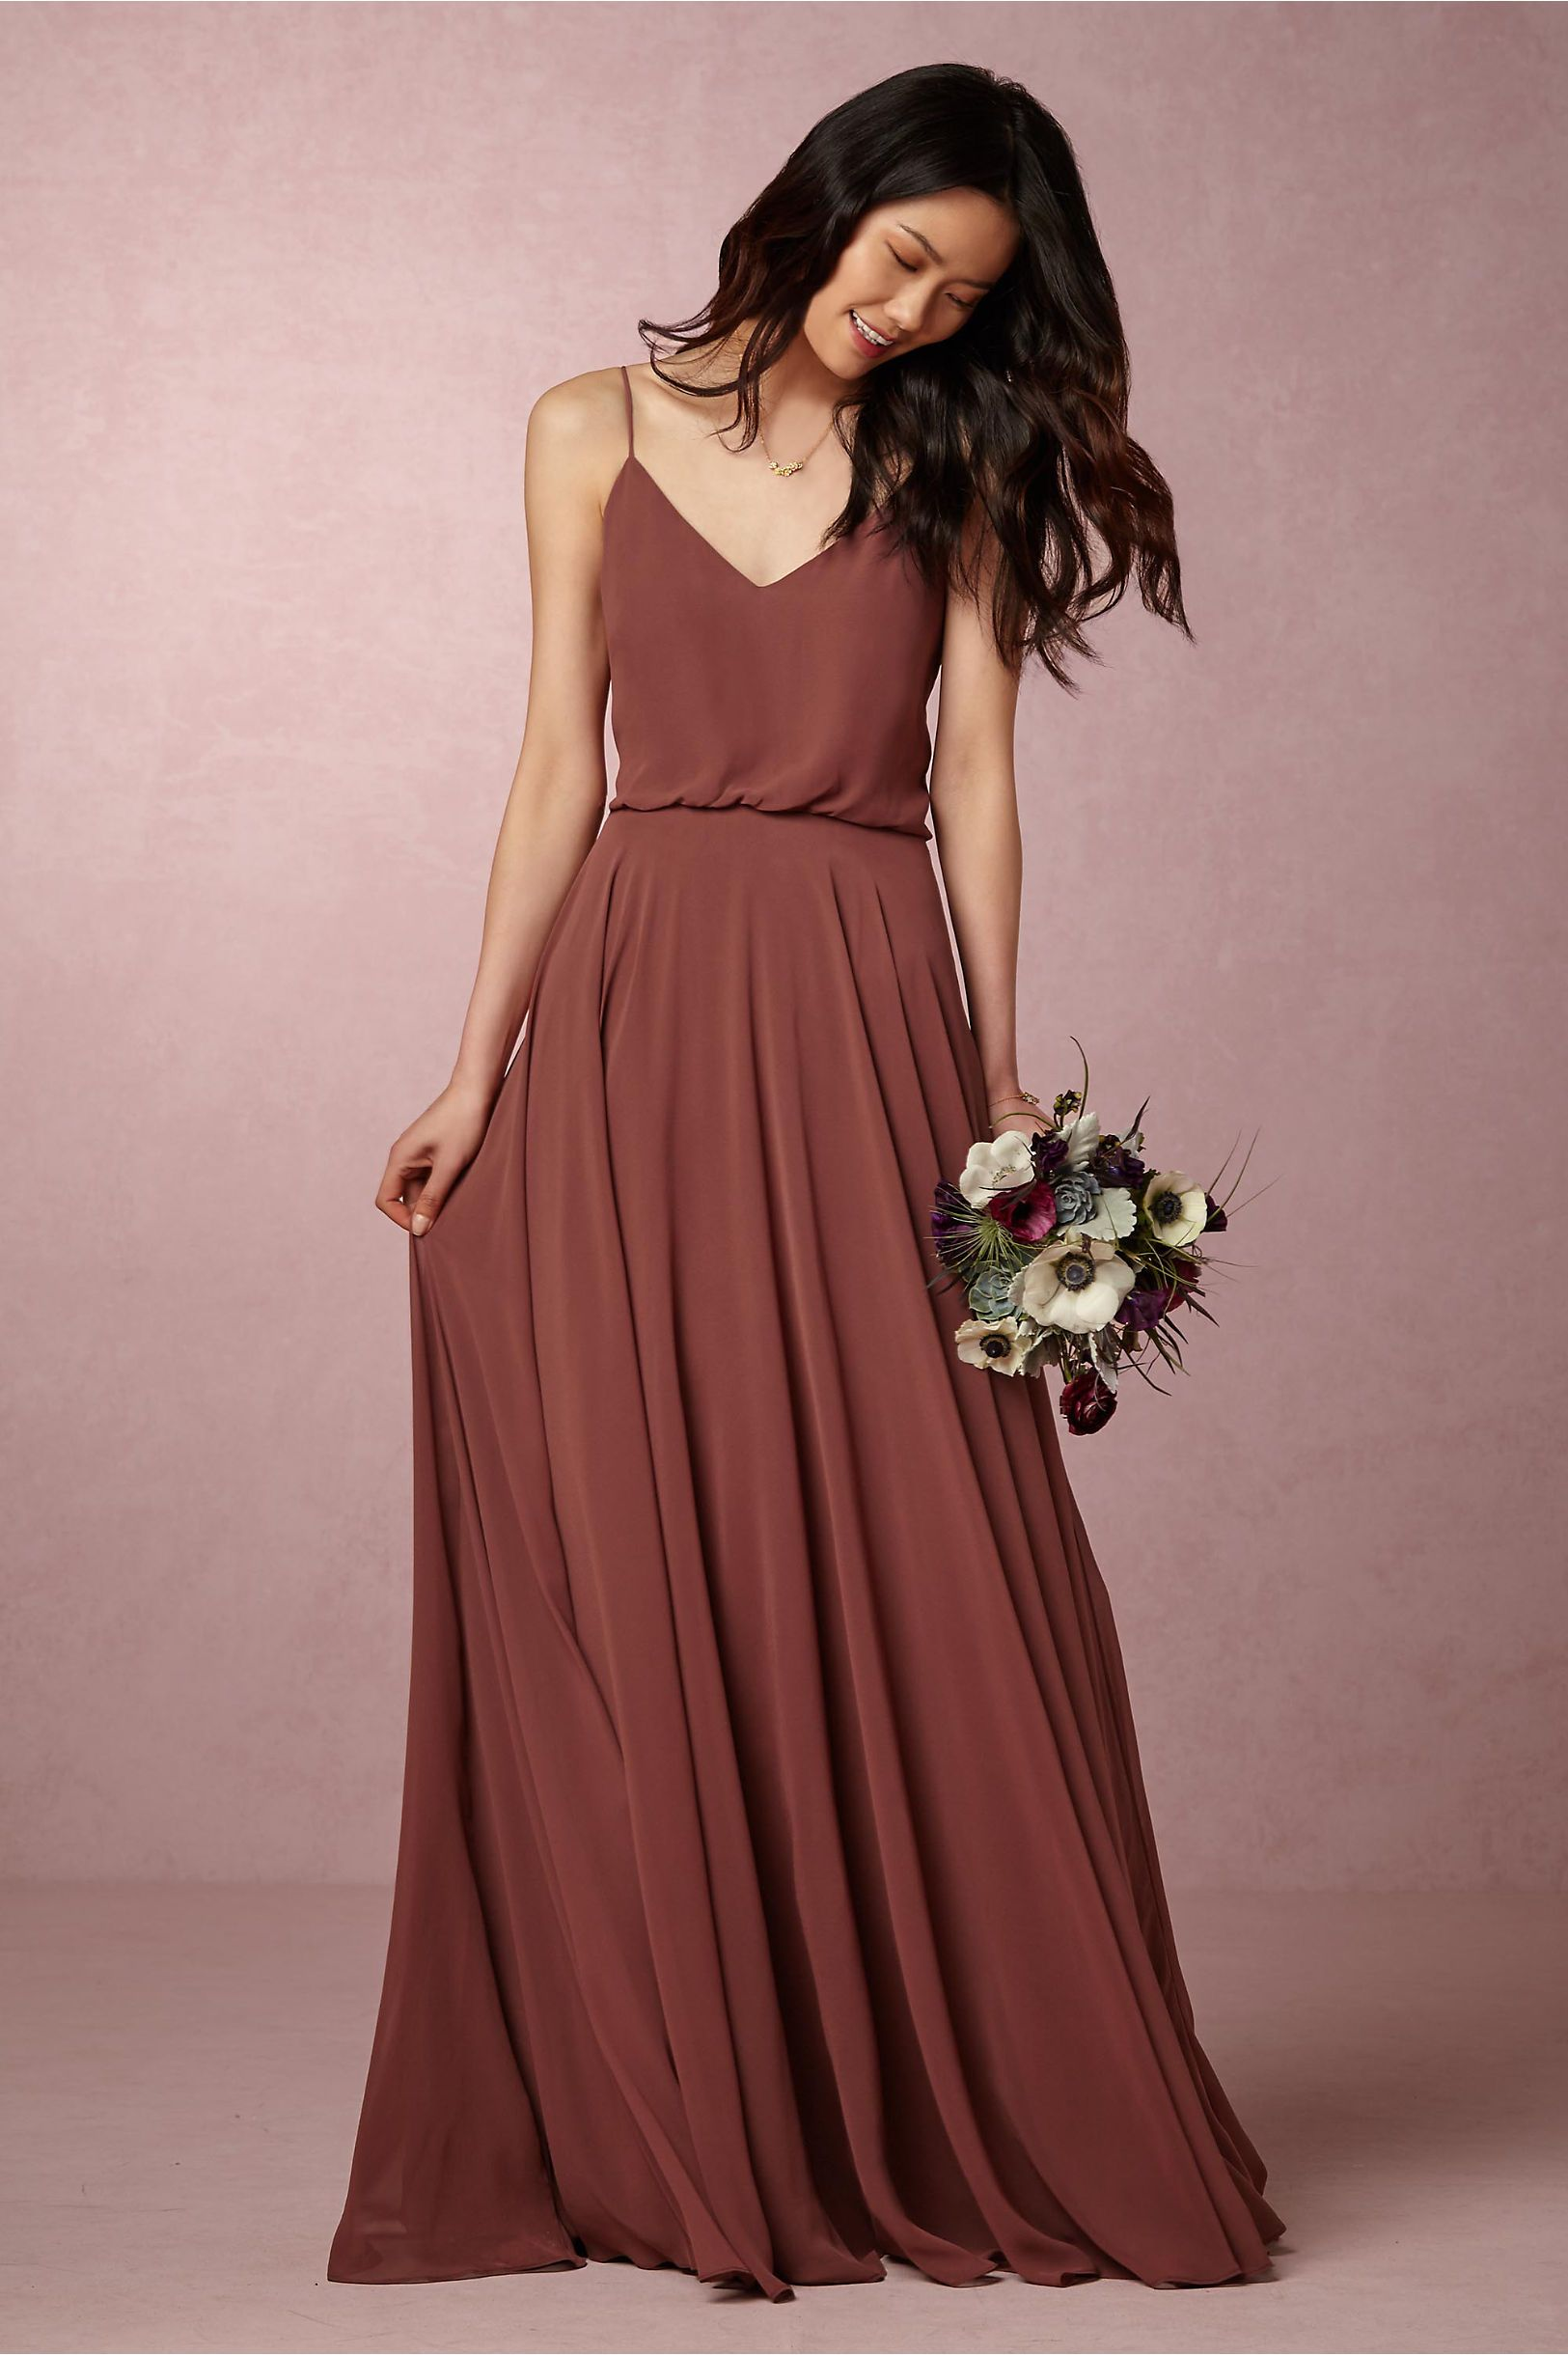 433805e1a5d BHLDN Inesse Dress in Bridesmaids View All Dresses at BHLDN ...